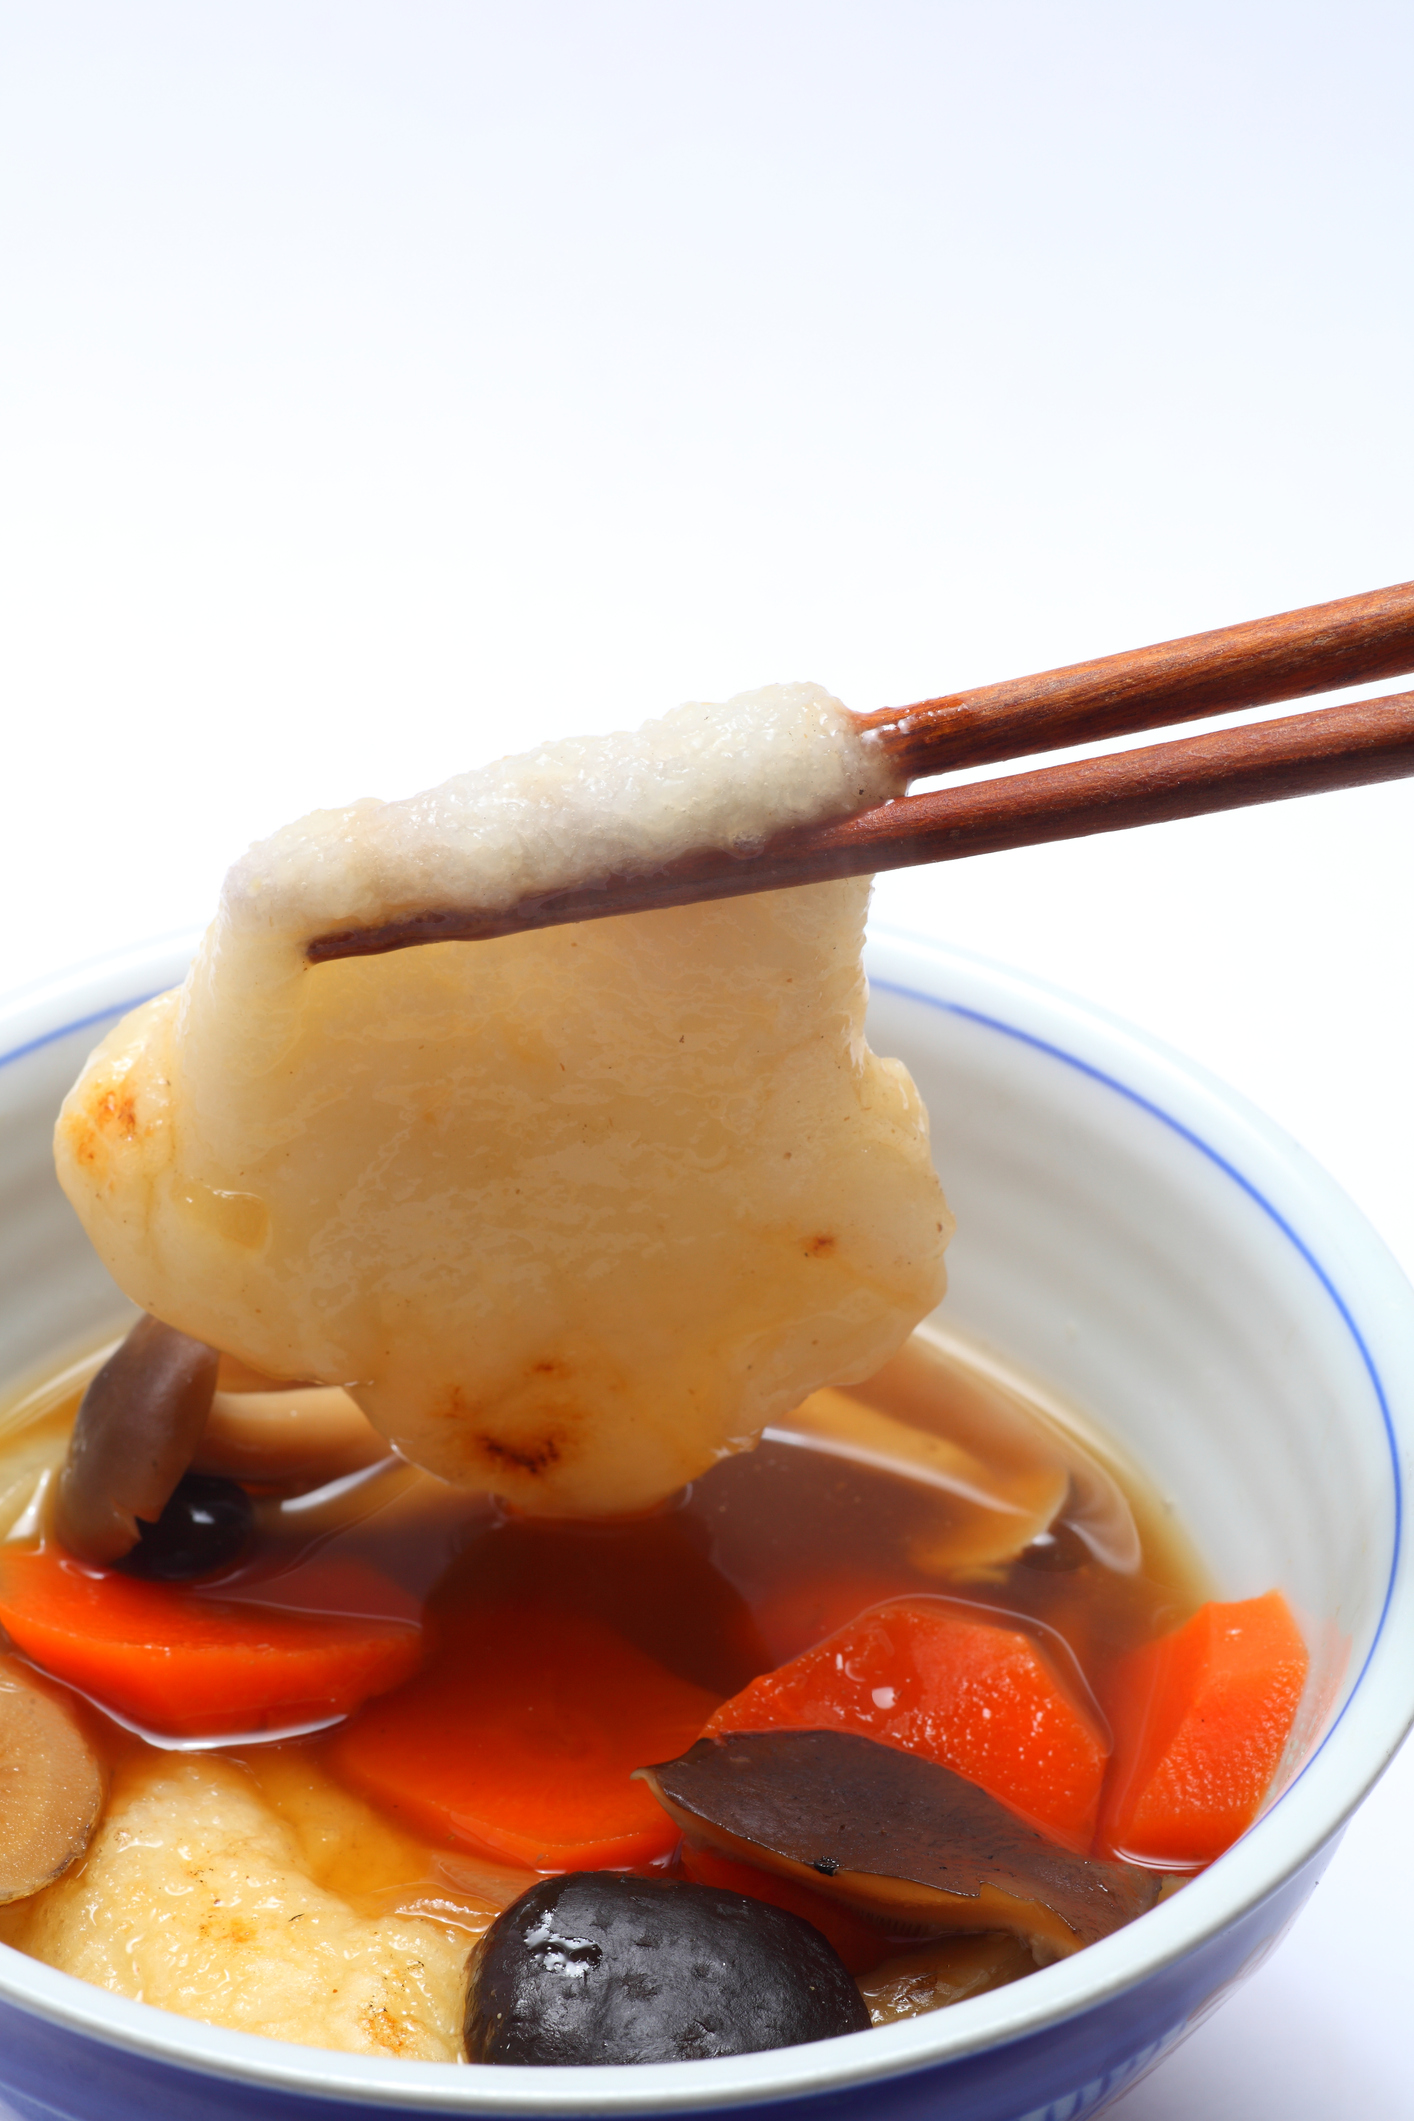 Mochi, a rice cake, is a key ingredient in zōni which is eaten on new year's day.